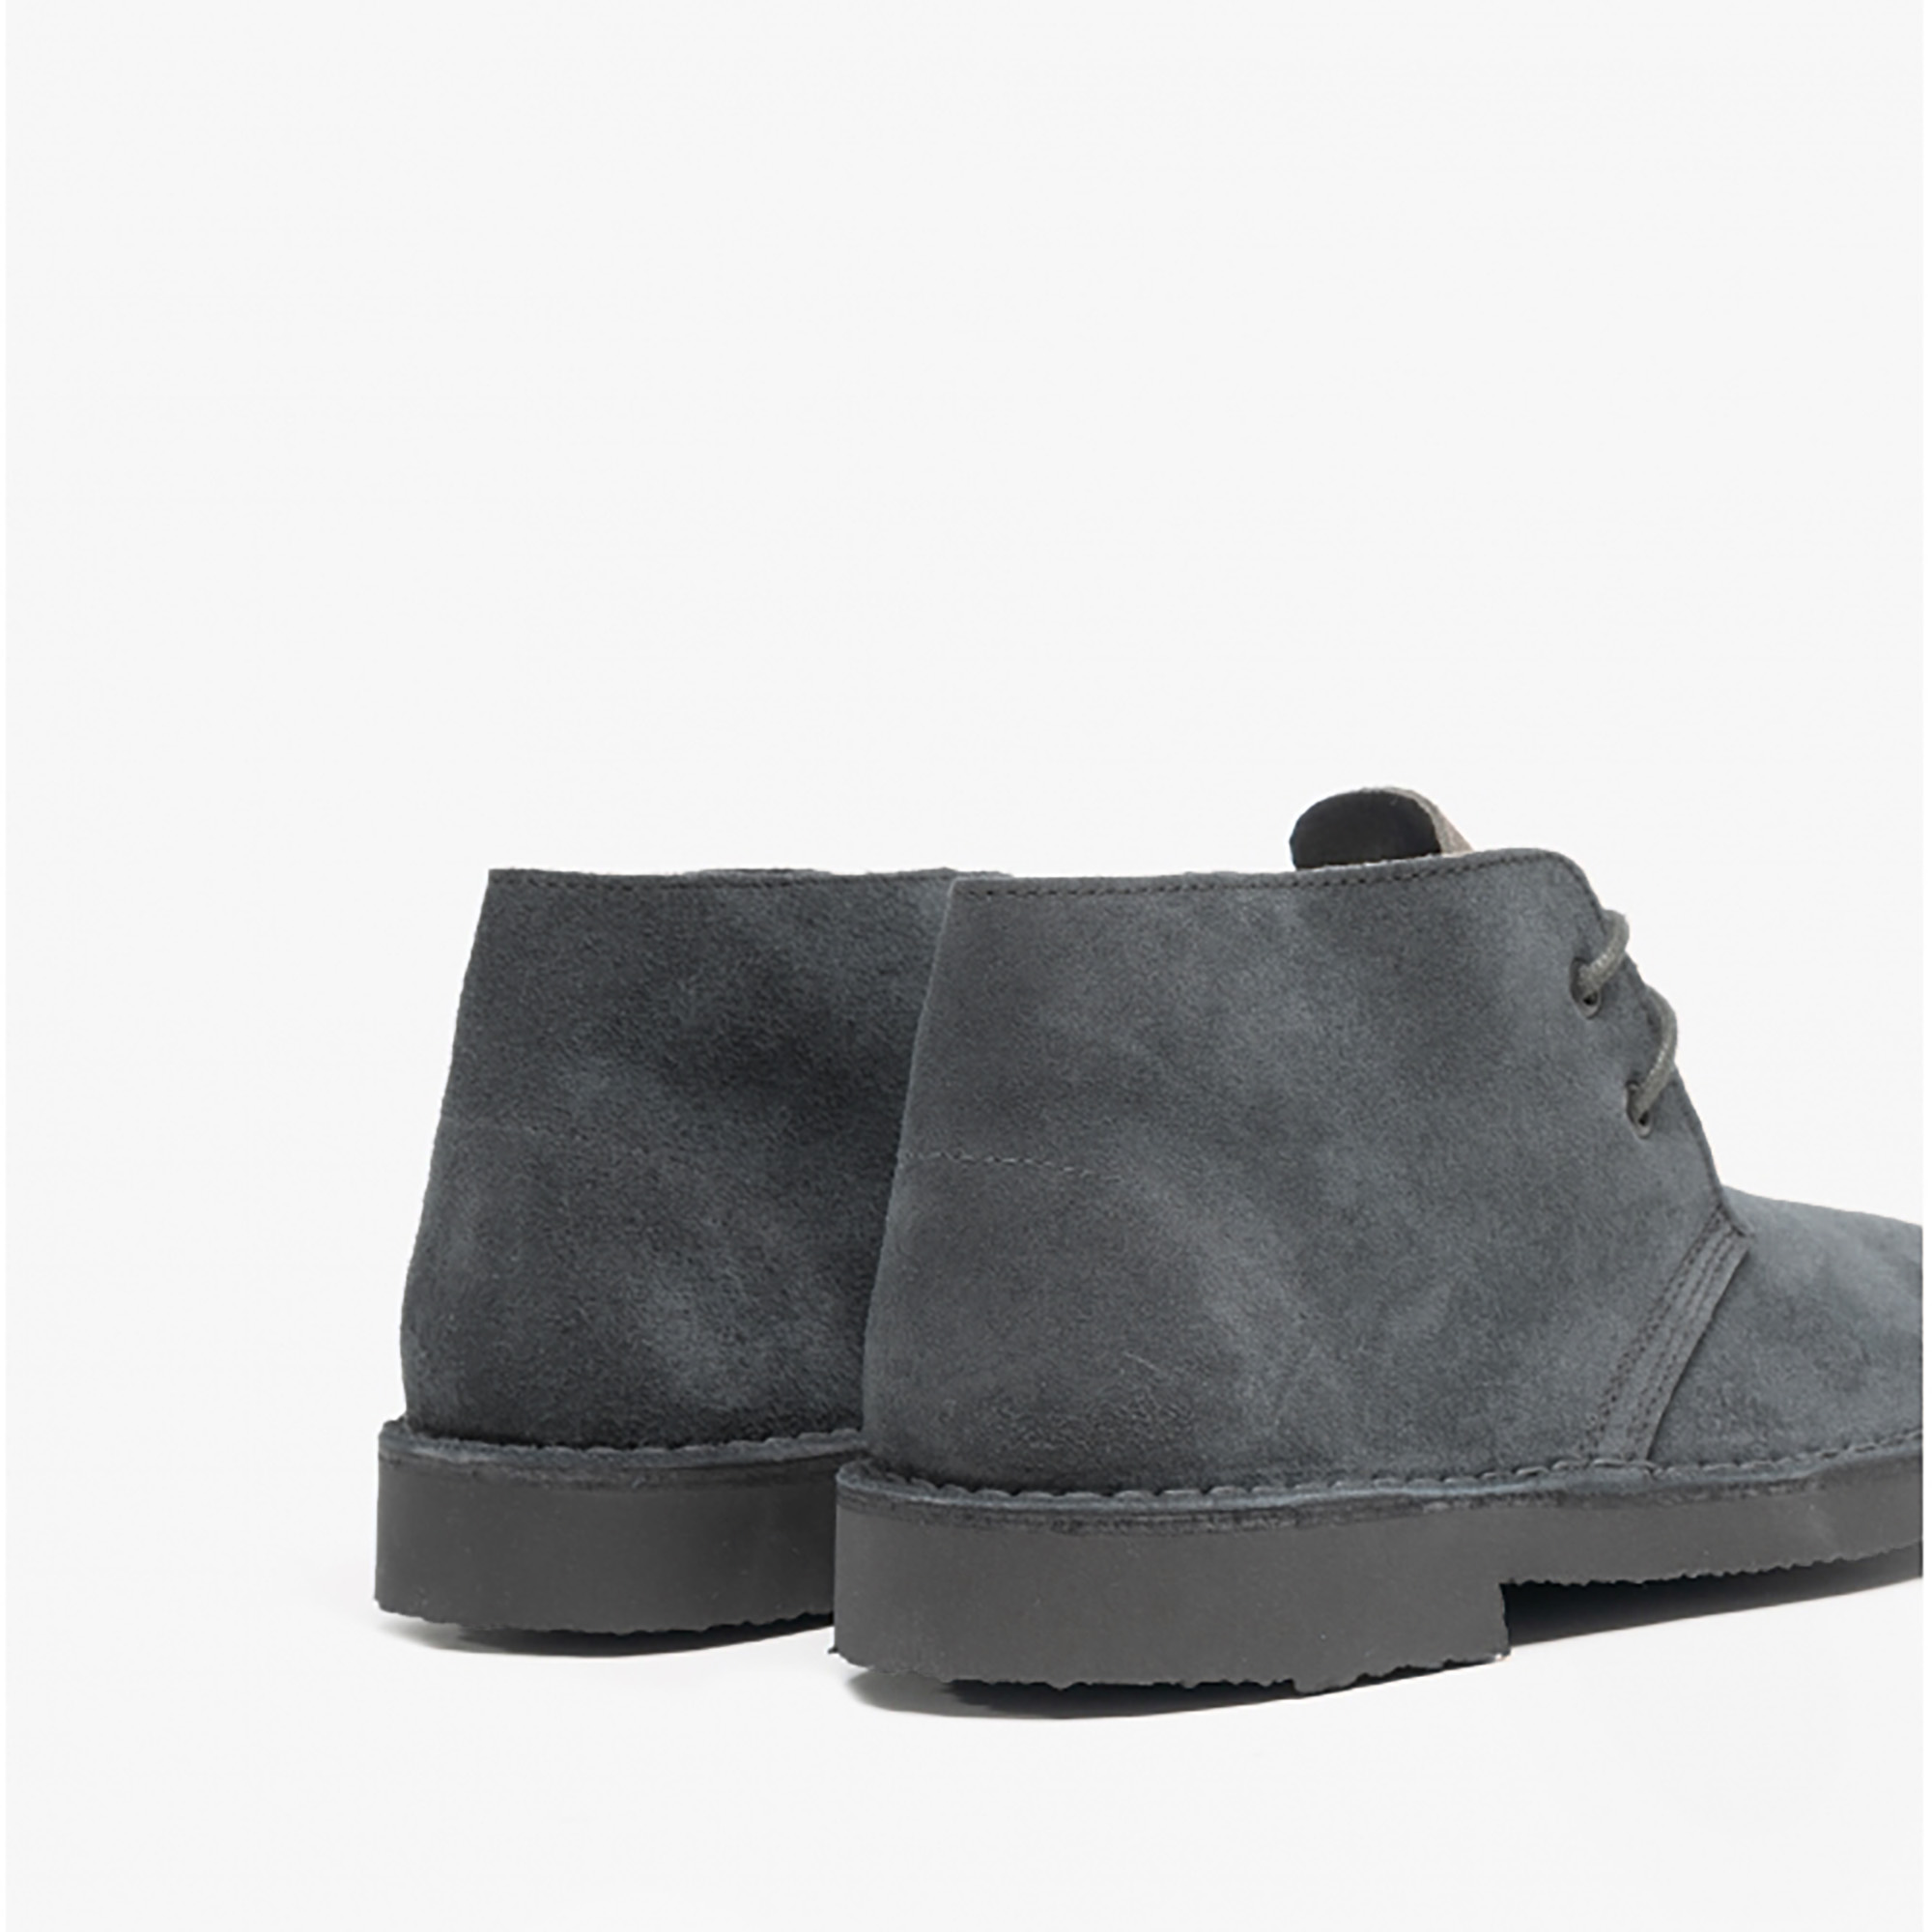 Roamers Adults Unisex Real Suede Unlined Desert Boots (10 UK) (Grey)